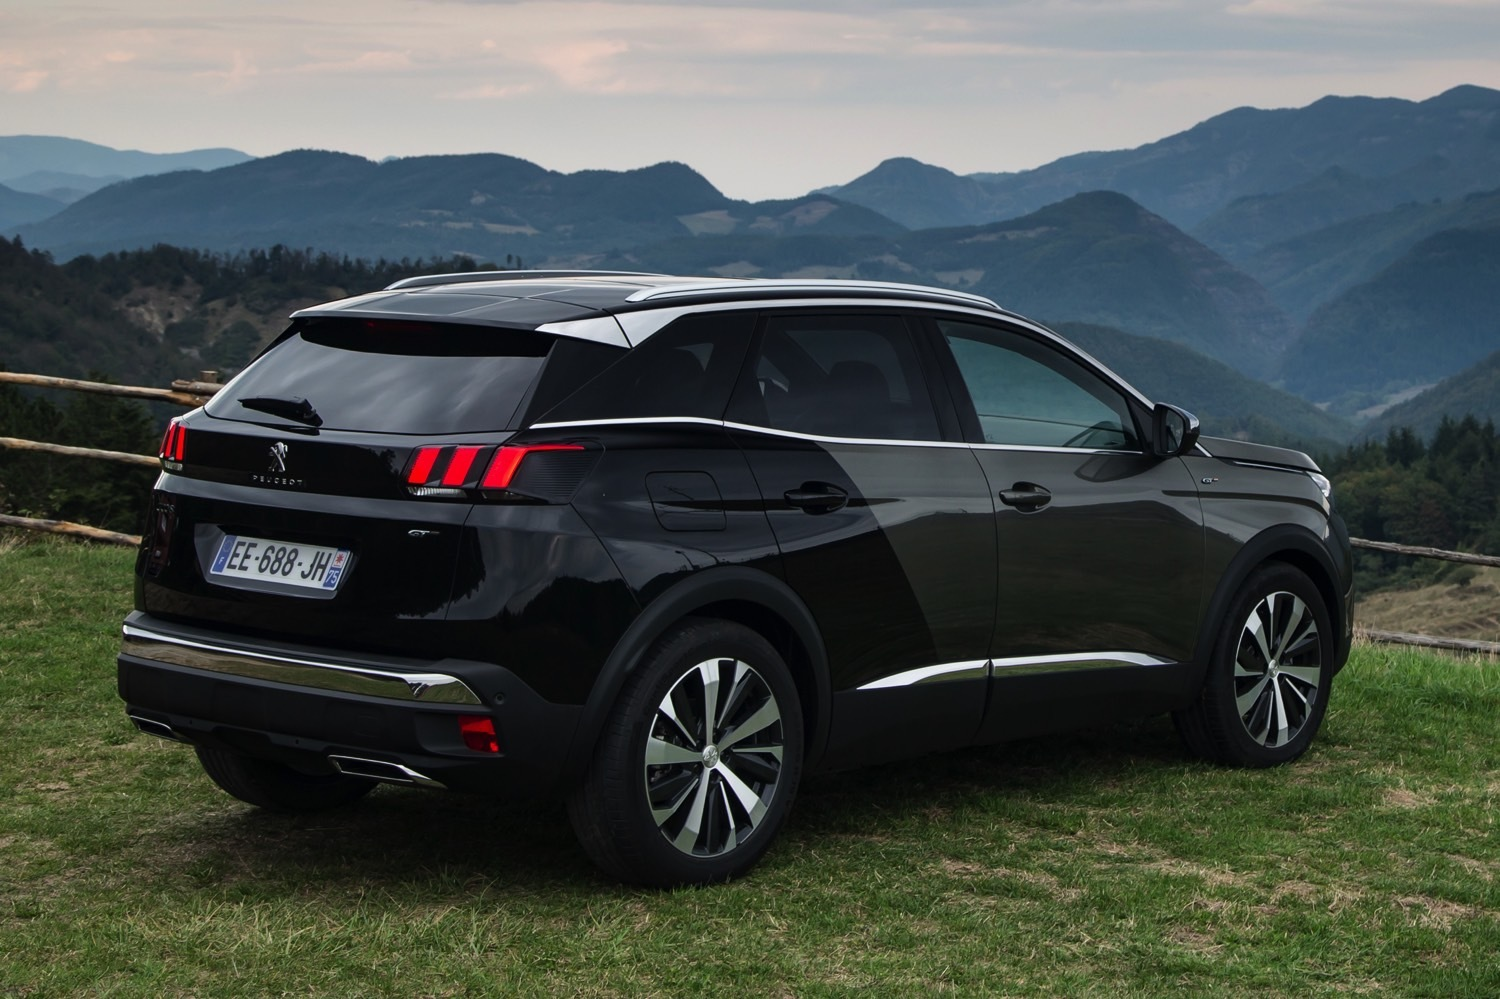 peugeot 3008 4x4 all new peugeot 3008 suv is available to order in december voiture 4x4 suv. Black Bedroom Furniture Sets. Home Design Ideas